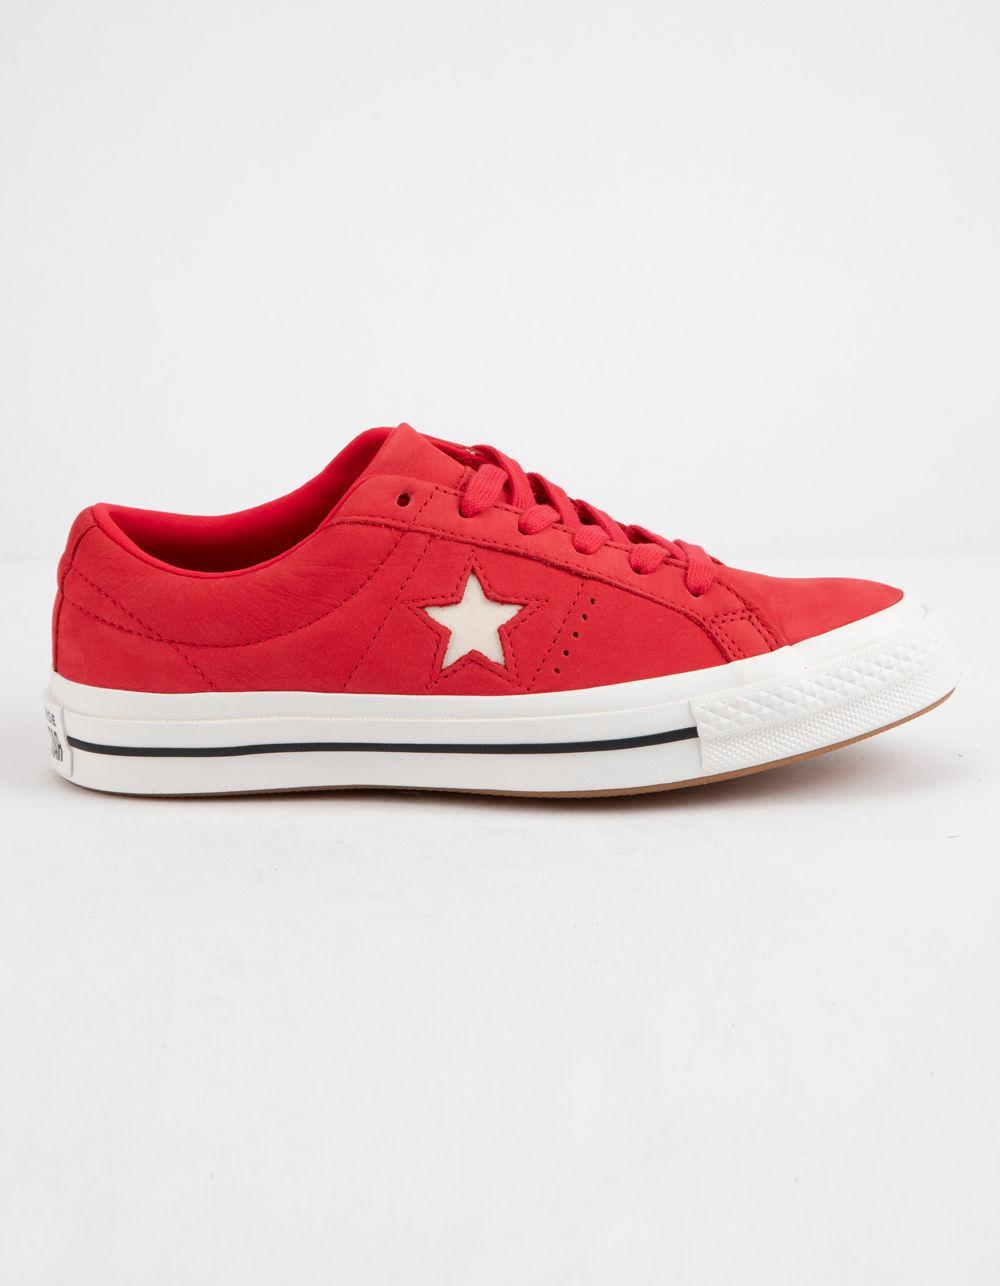 aaccc4822d1c Lyst - Converse One Star Ox Cherry Red   Vintage White Womens Low ...